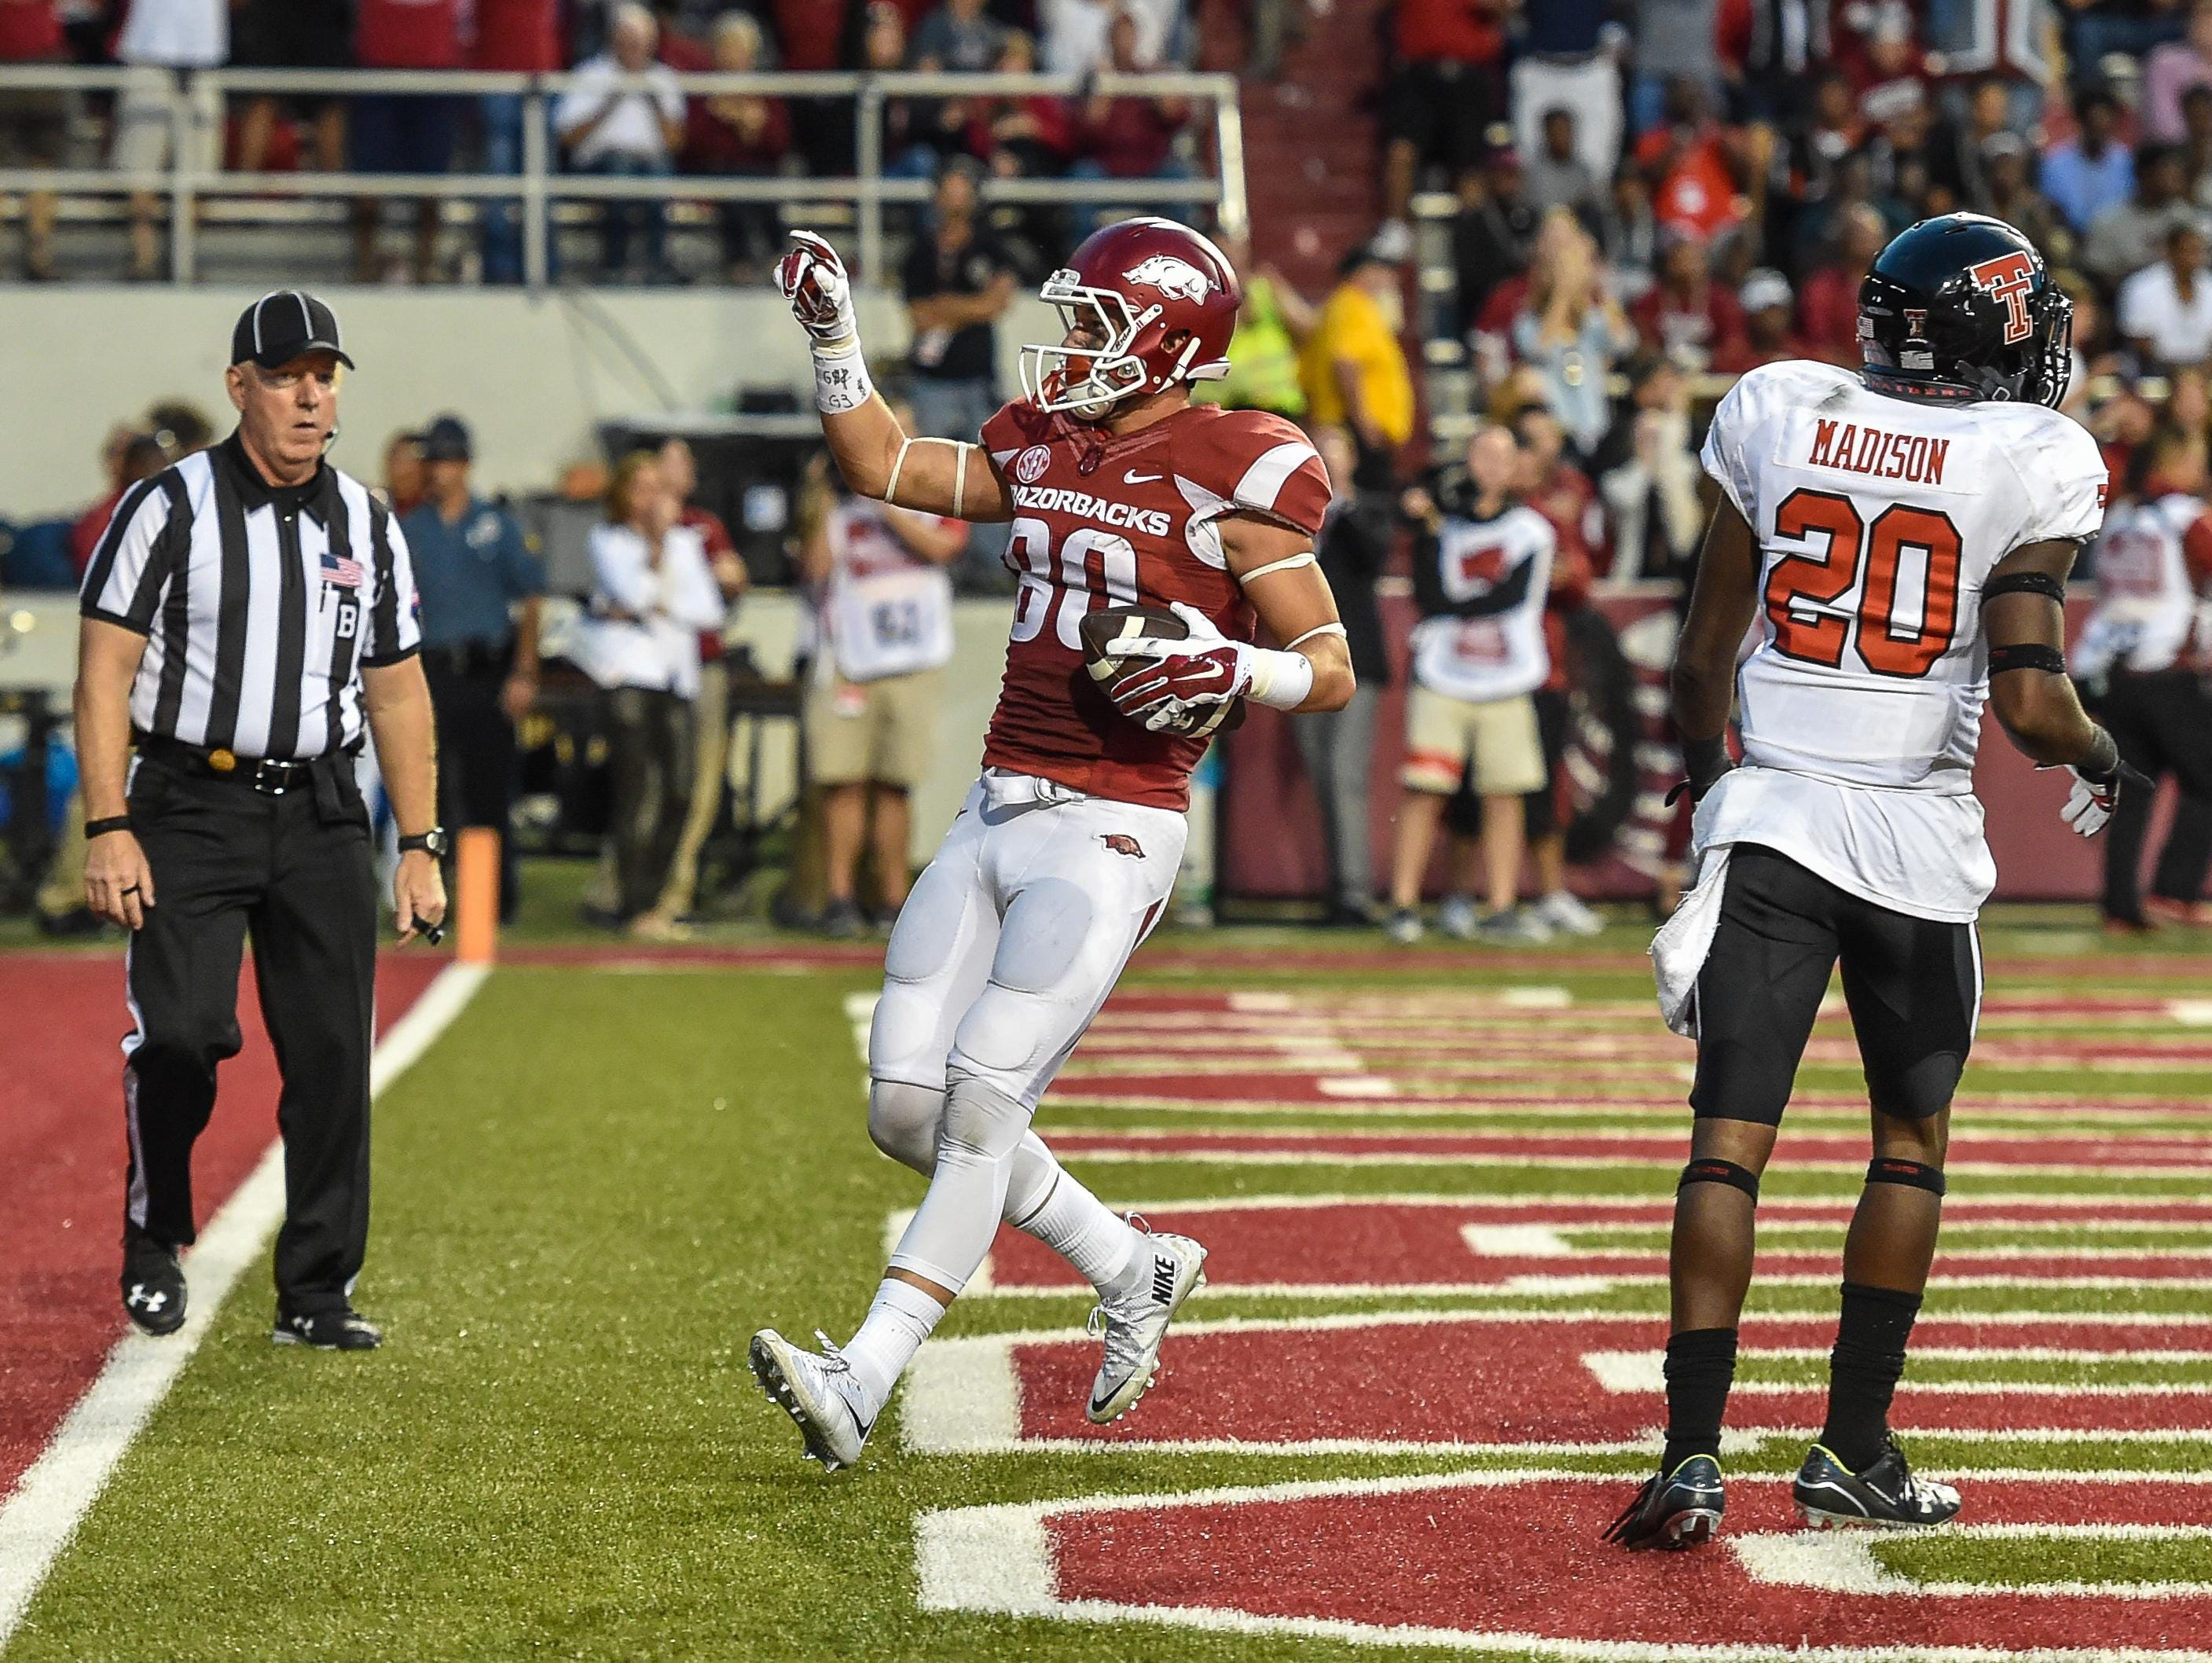 Arkansas wide receiver Drew Morgan (80) celebrates in the end zone after a touchdown during a game between the Razorbacks and the Texas Tech Red Raiders at Reynolds Razorback Stadium in Fayetteville. Texas Tech won 35-24.